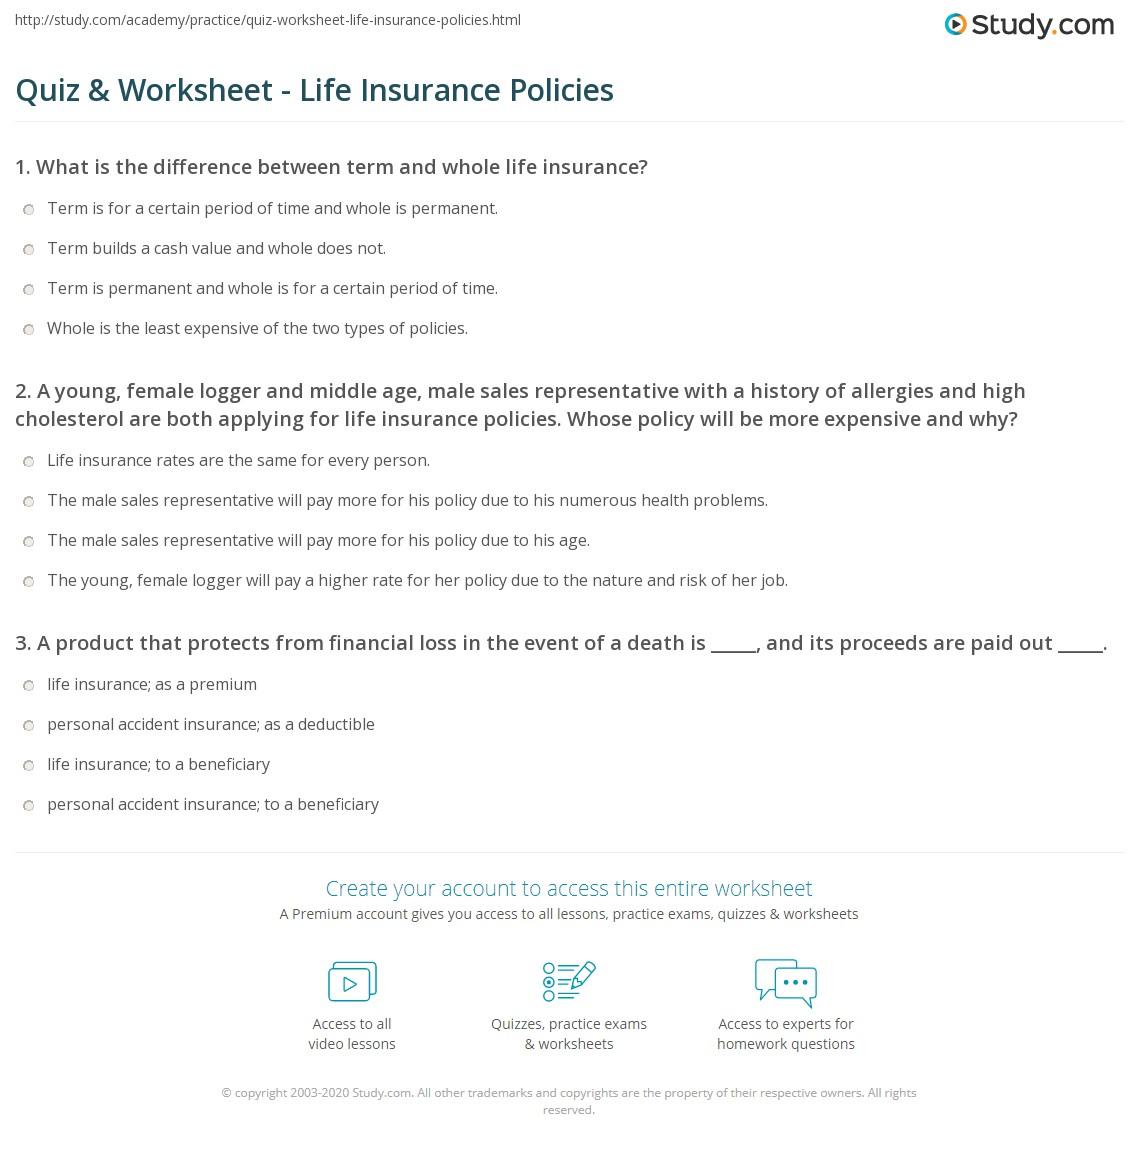 Quiz worksheet life insurance policies study a young female logger and middle age male sales representative with a history of allergies and high cholesterol are both applying for life insurance thecheapjerseys Image collections